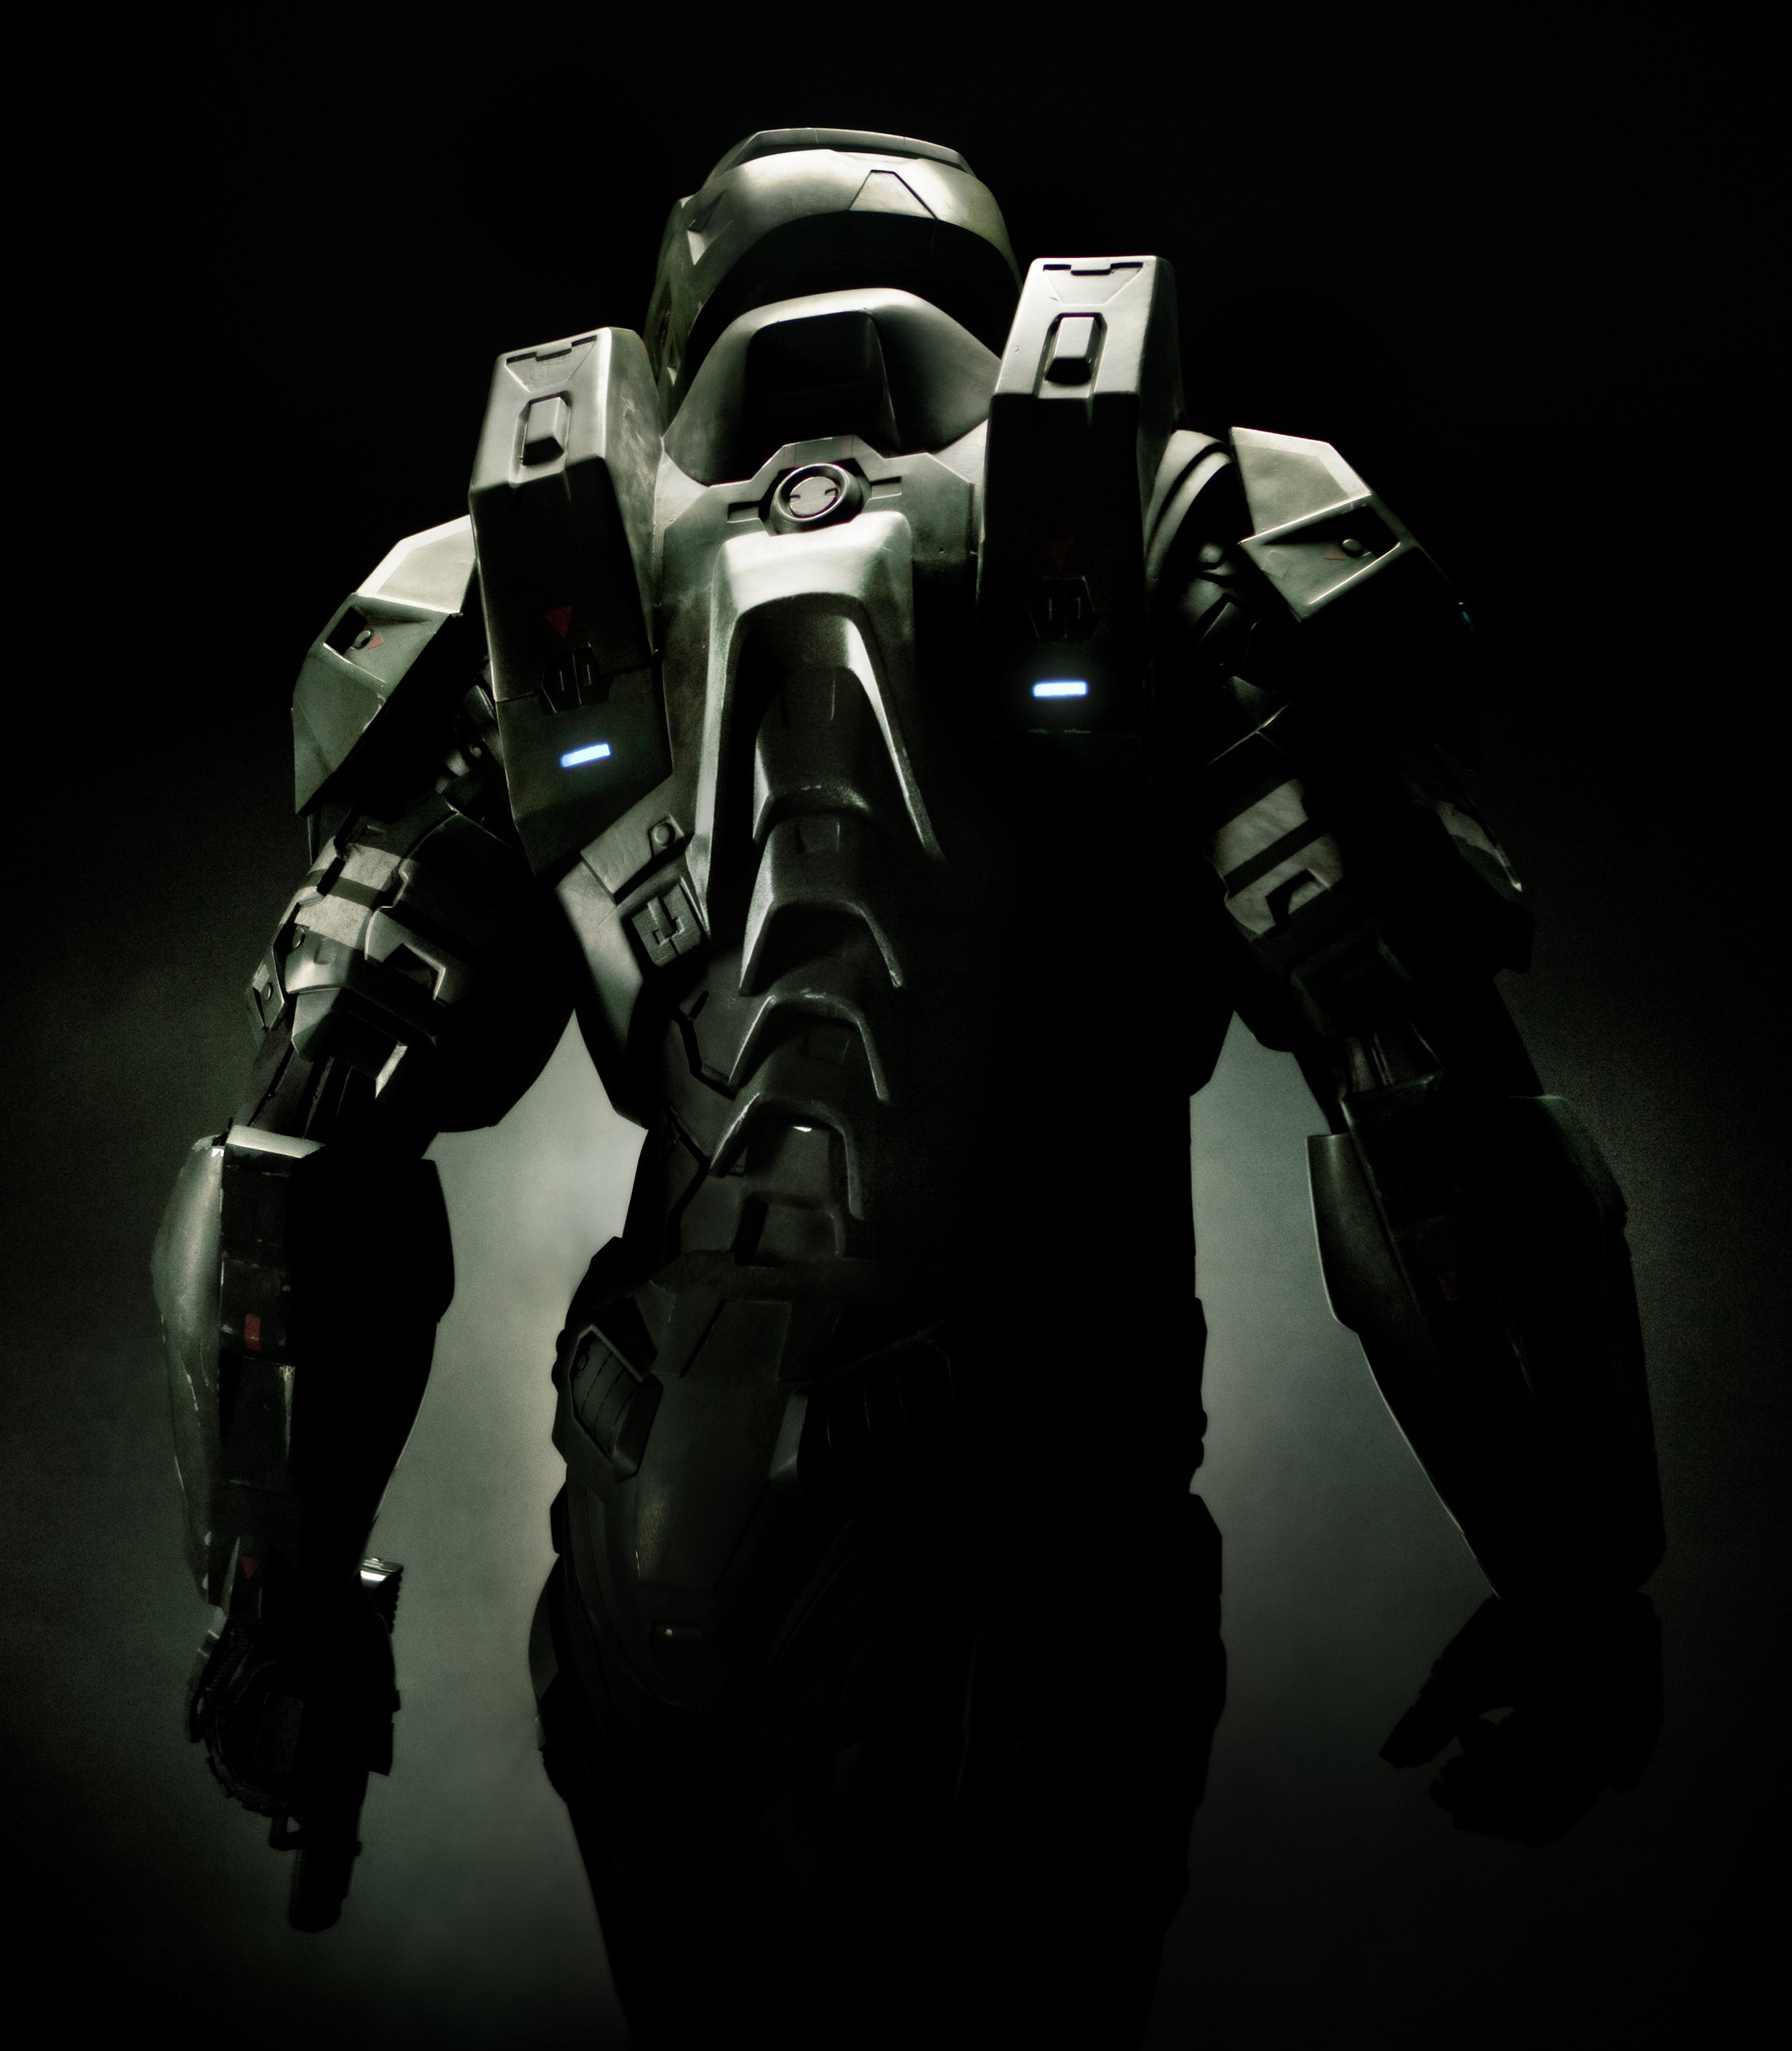 Halo 4 Forward Unto Dawn Is Tense But You Ll Like It The